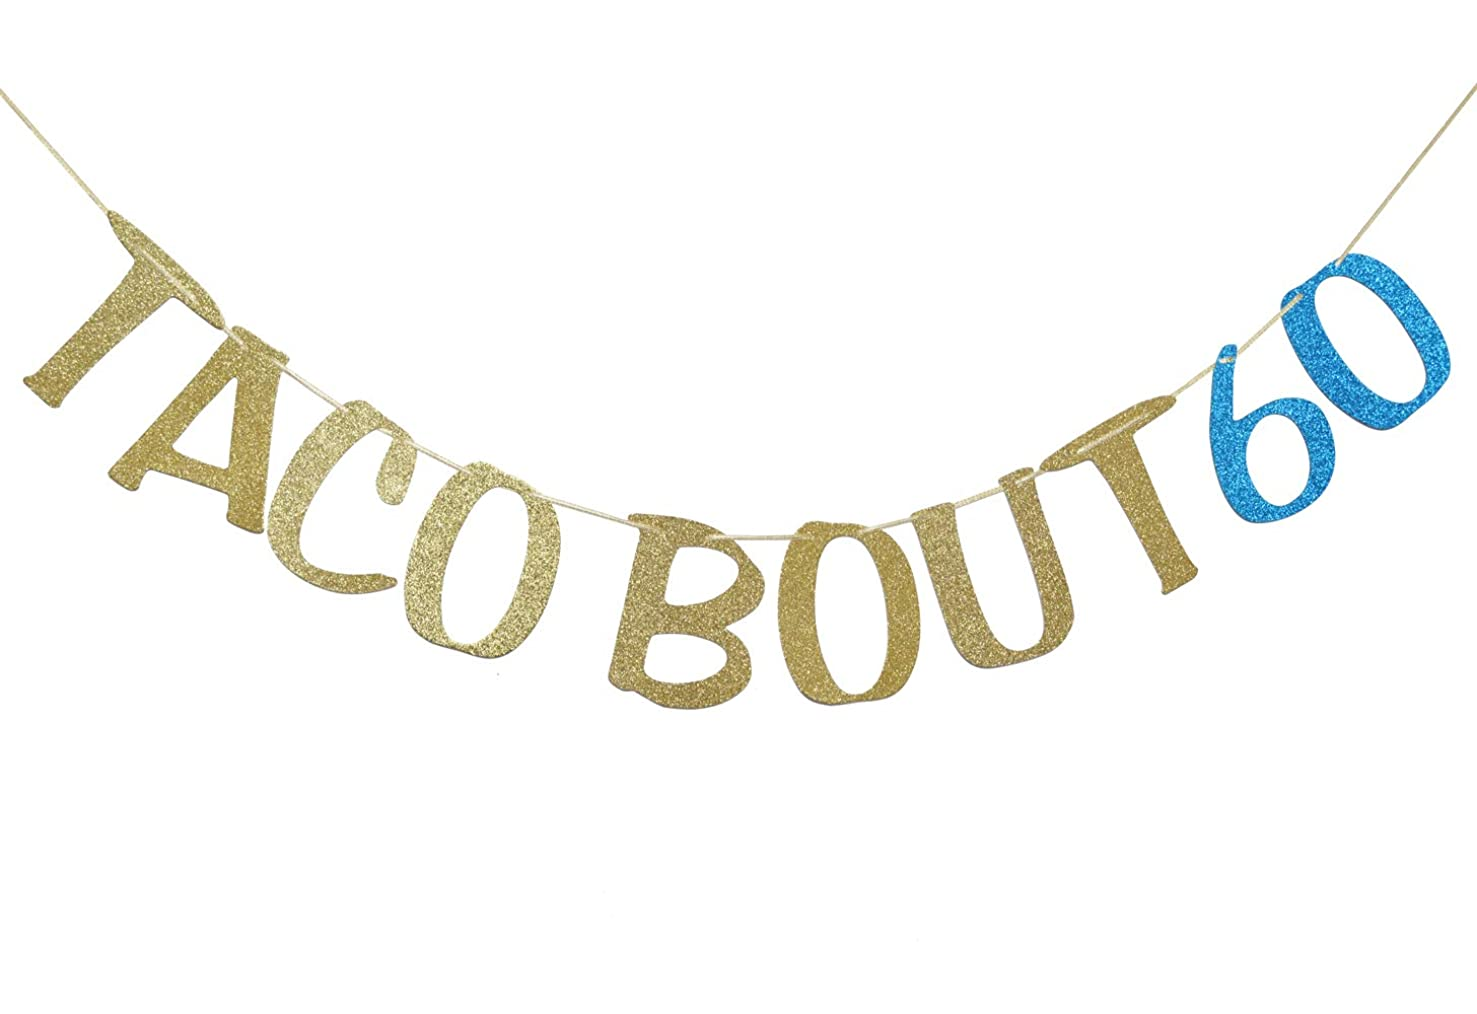 Taco Bout 60 Banner Sign Gold Glitter for 60th Birthday Party Decorations Anniversary Decor Photo Booth Props